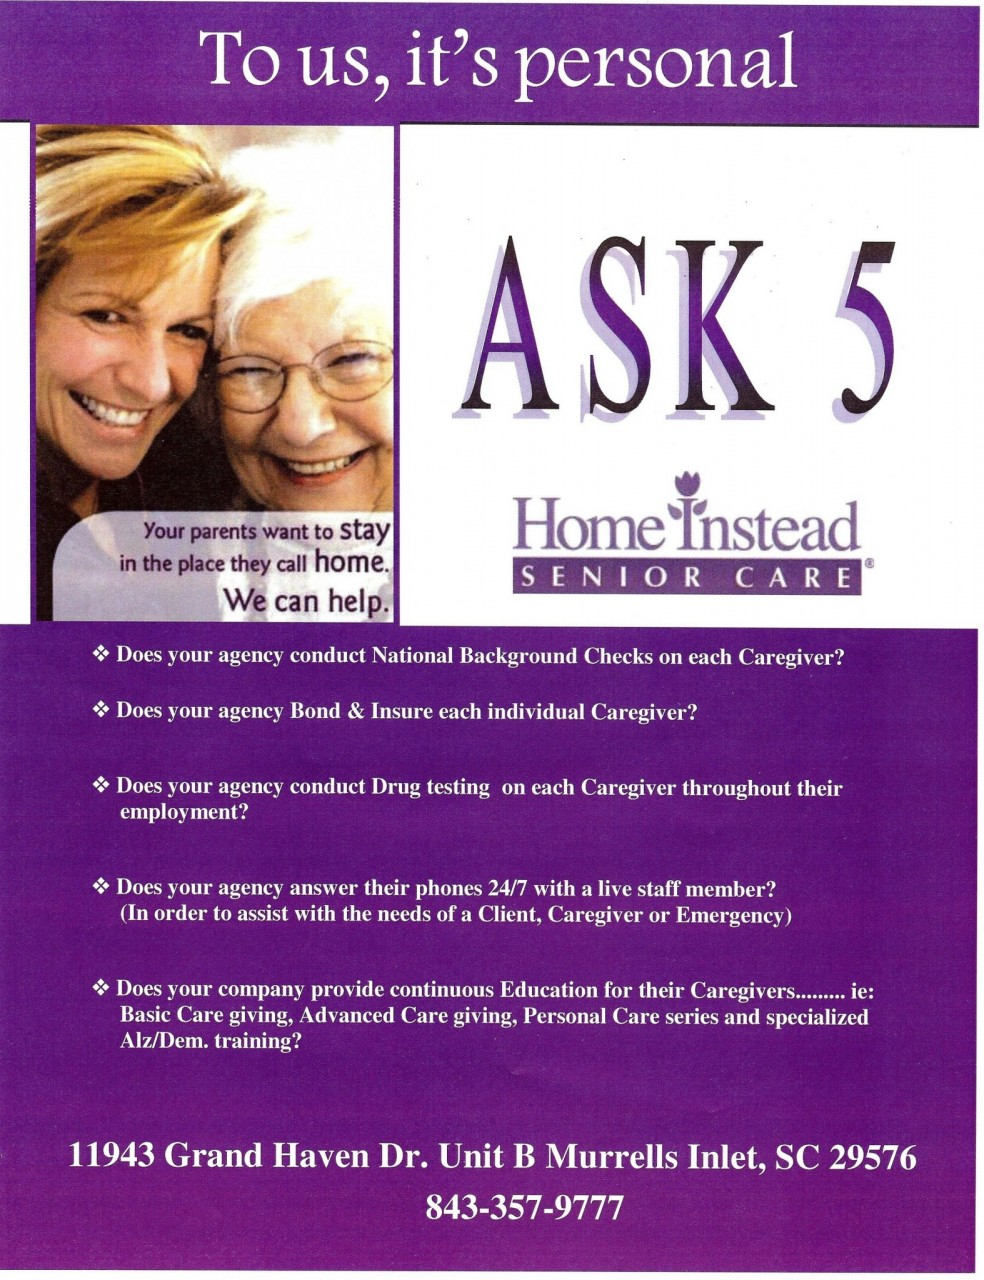 Home Instead Senior Care – Ask 5 001 (2)   Conway Chamber of